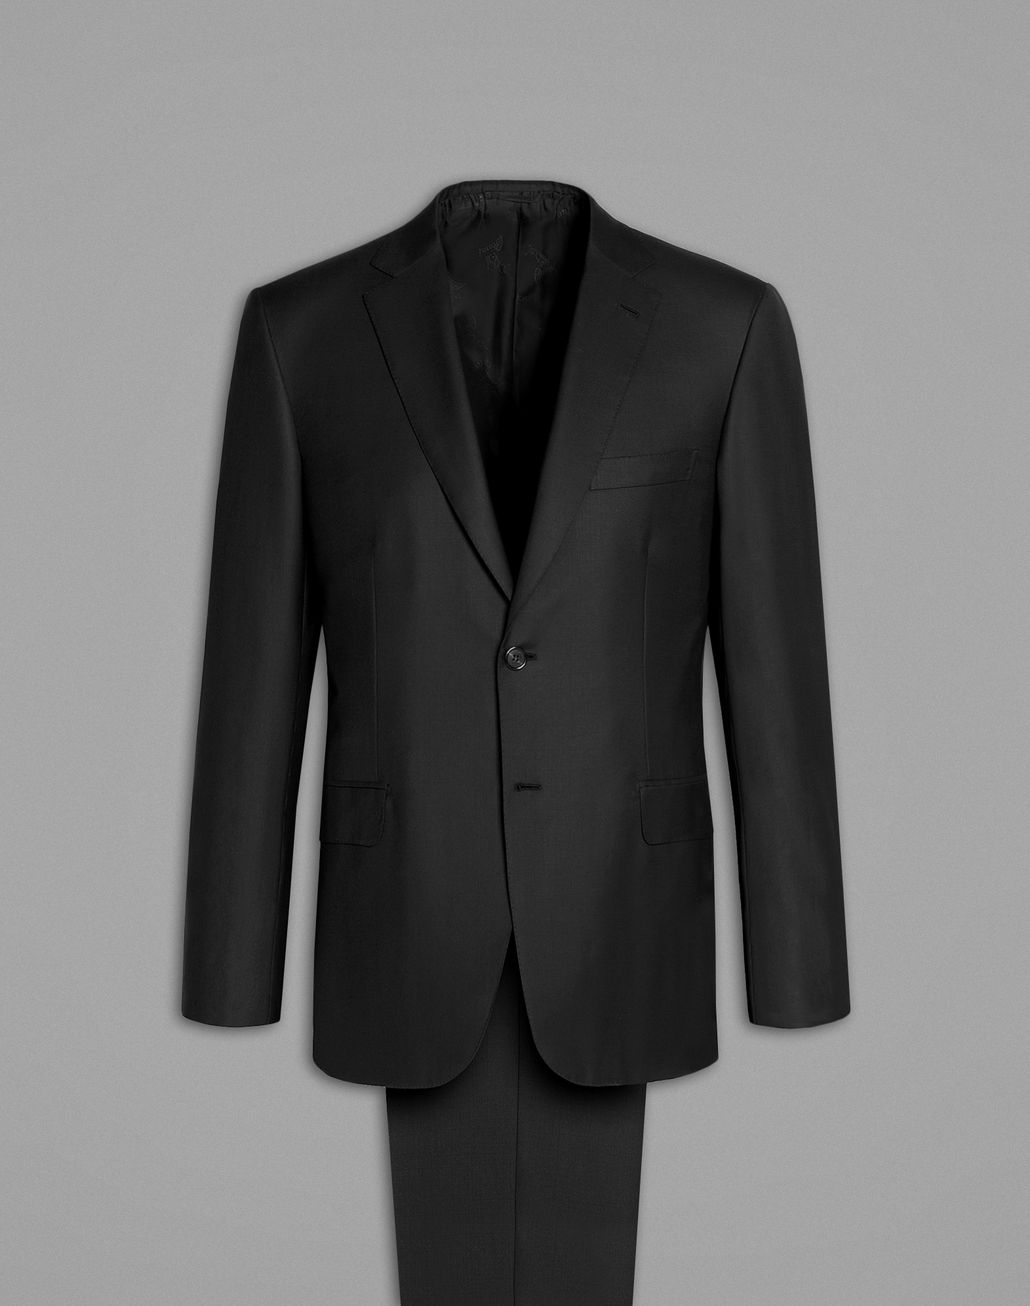 BRIONI 'Essential' Black Brunico Suit Suits & Jackets Man f